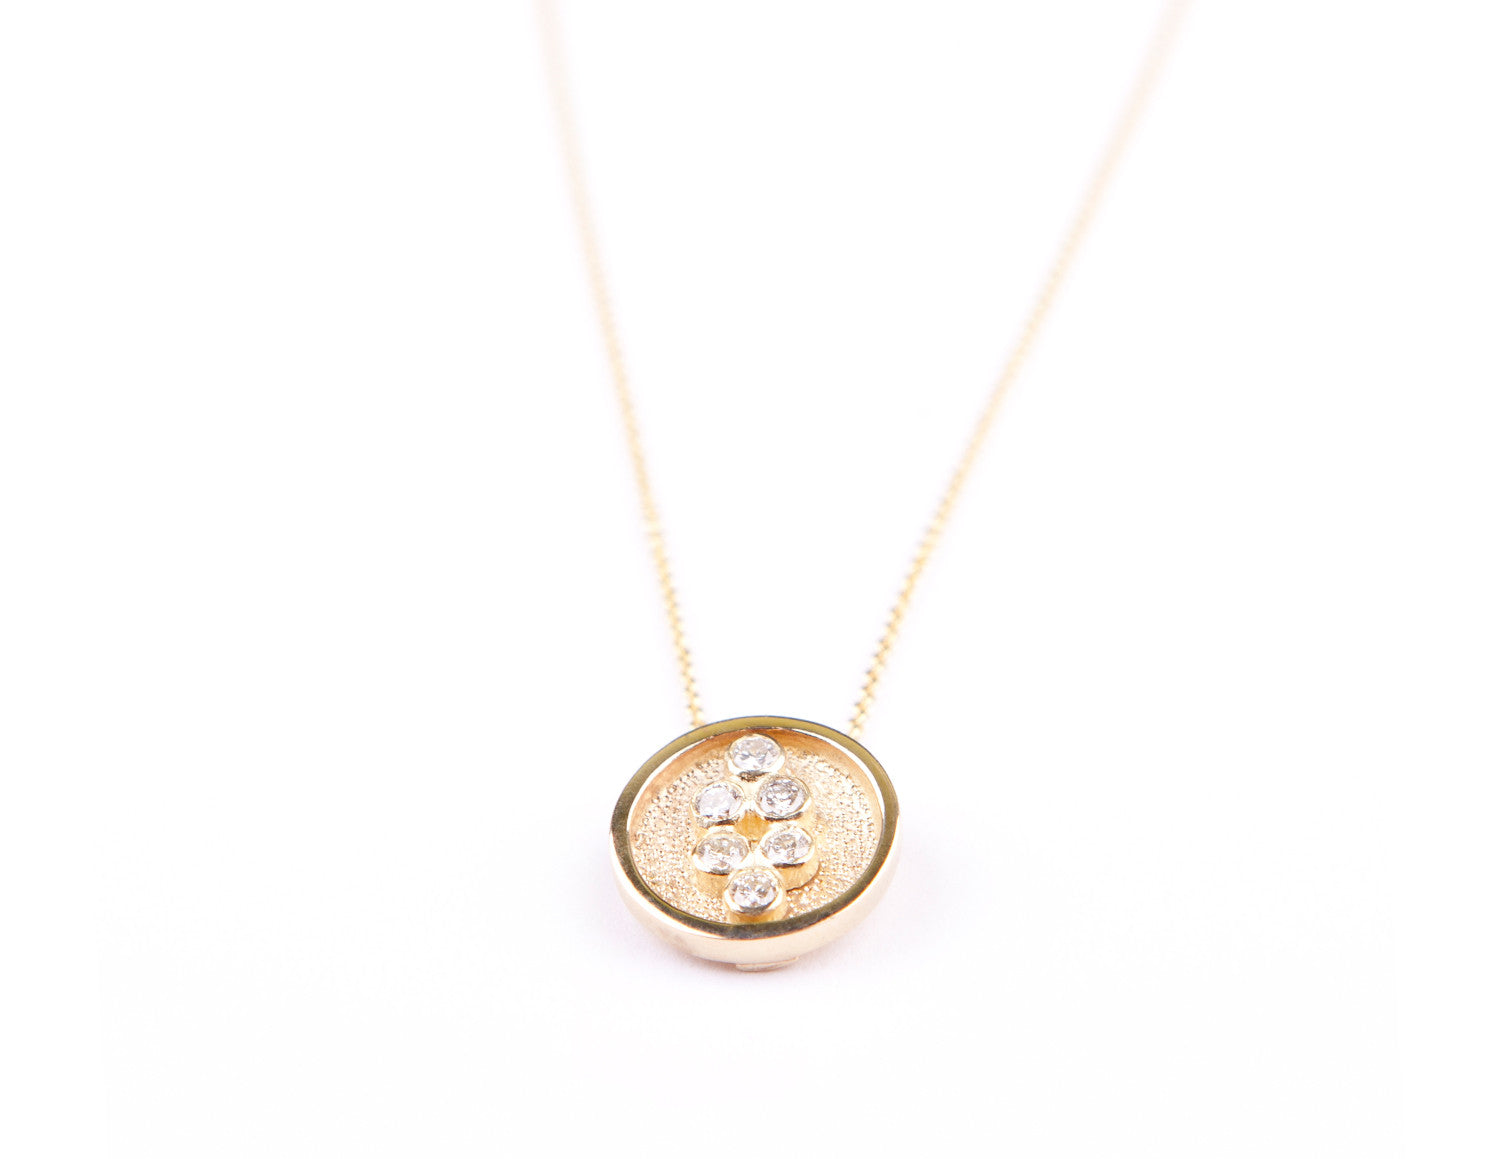 SMALL CIRCLE SINGLE PENDANT WITH CHAIN